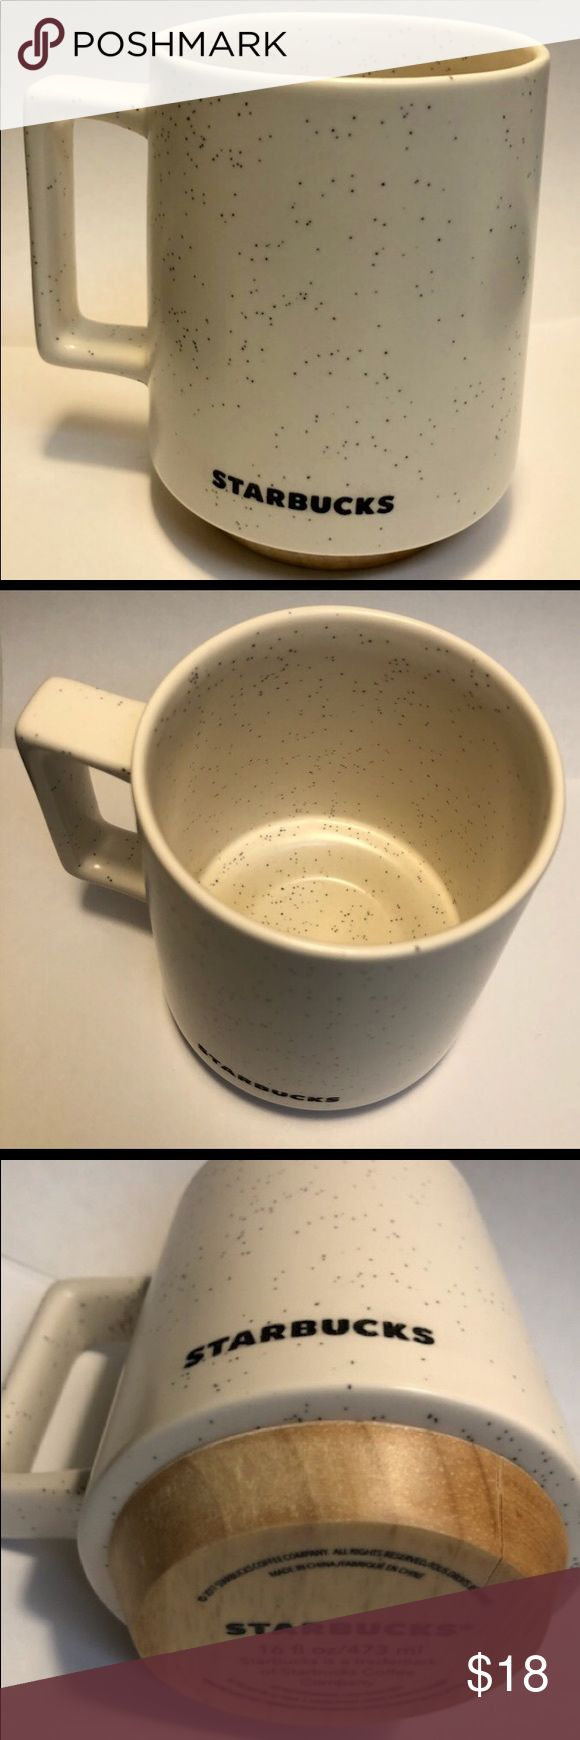 Starbucks Ceramic Coffee Mug Starbucks Ceramic Coffee Mug With Faux Wood Base 16 Fl Oz NEW 2017 New  Ceramic Mug Faux wood base looks like wood feels like plastic, small hairline fracture on the wood base.Doesn't affect the over all function. 16oz Starbucks Other